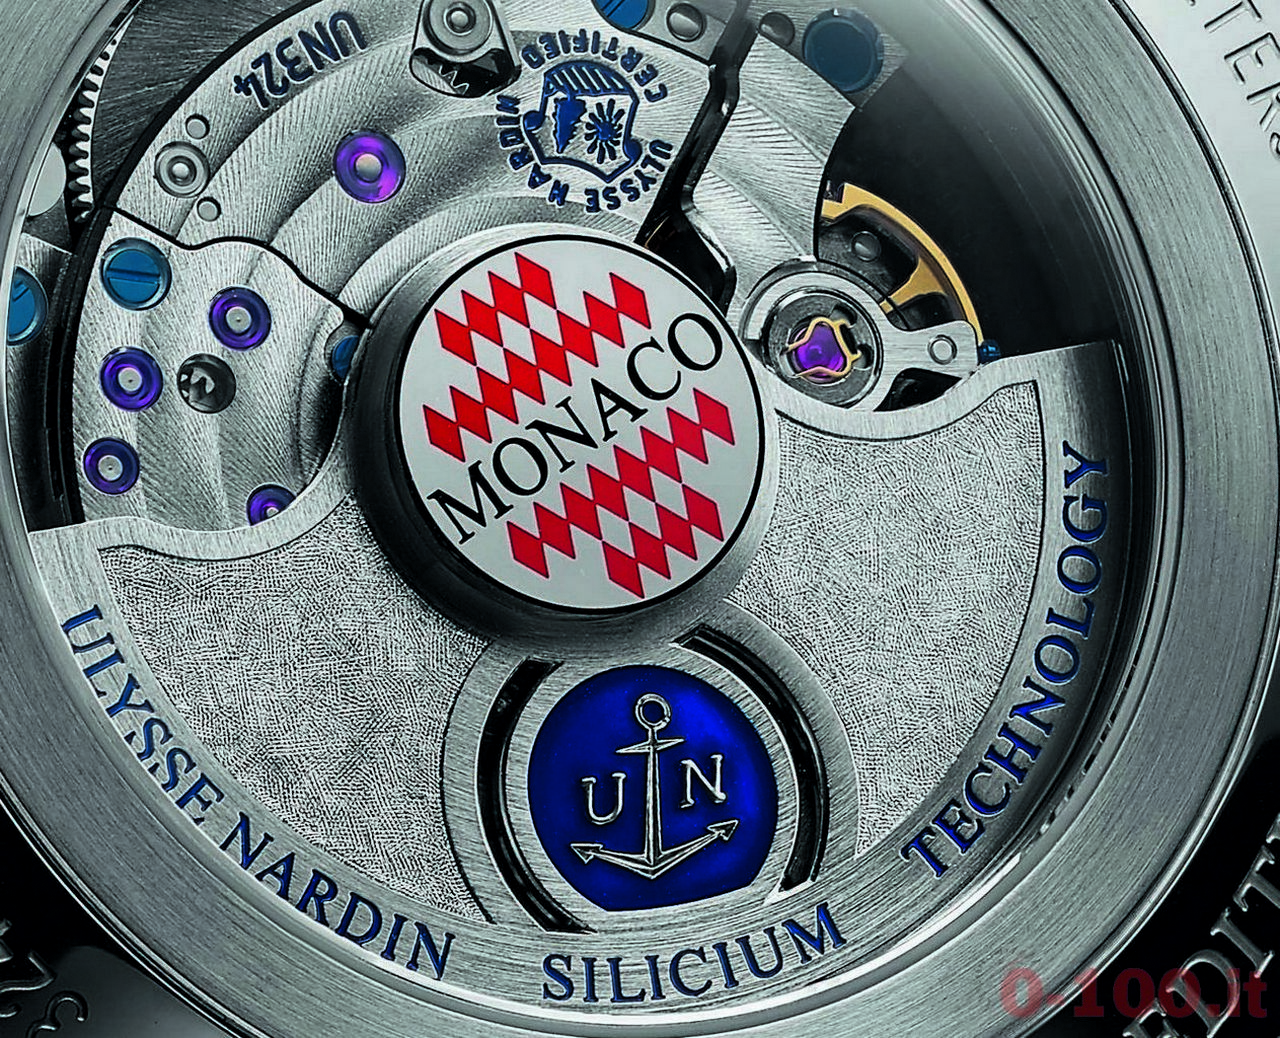 ulysse-nardin-dual-time-manufacture-monaco-limited-edition-ref-3243-132le93-mon_0-1004